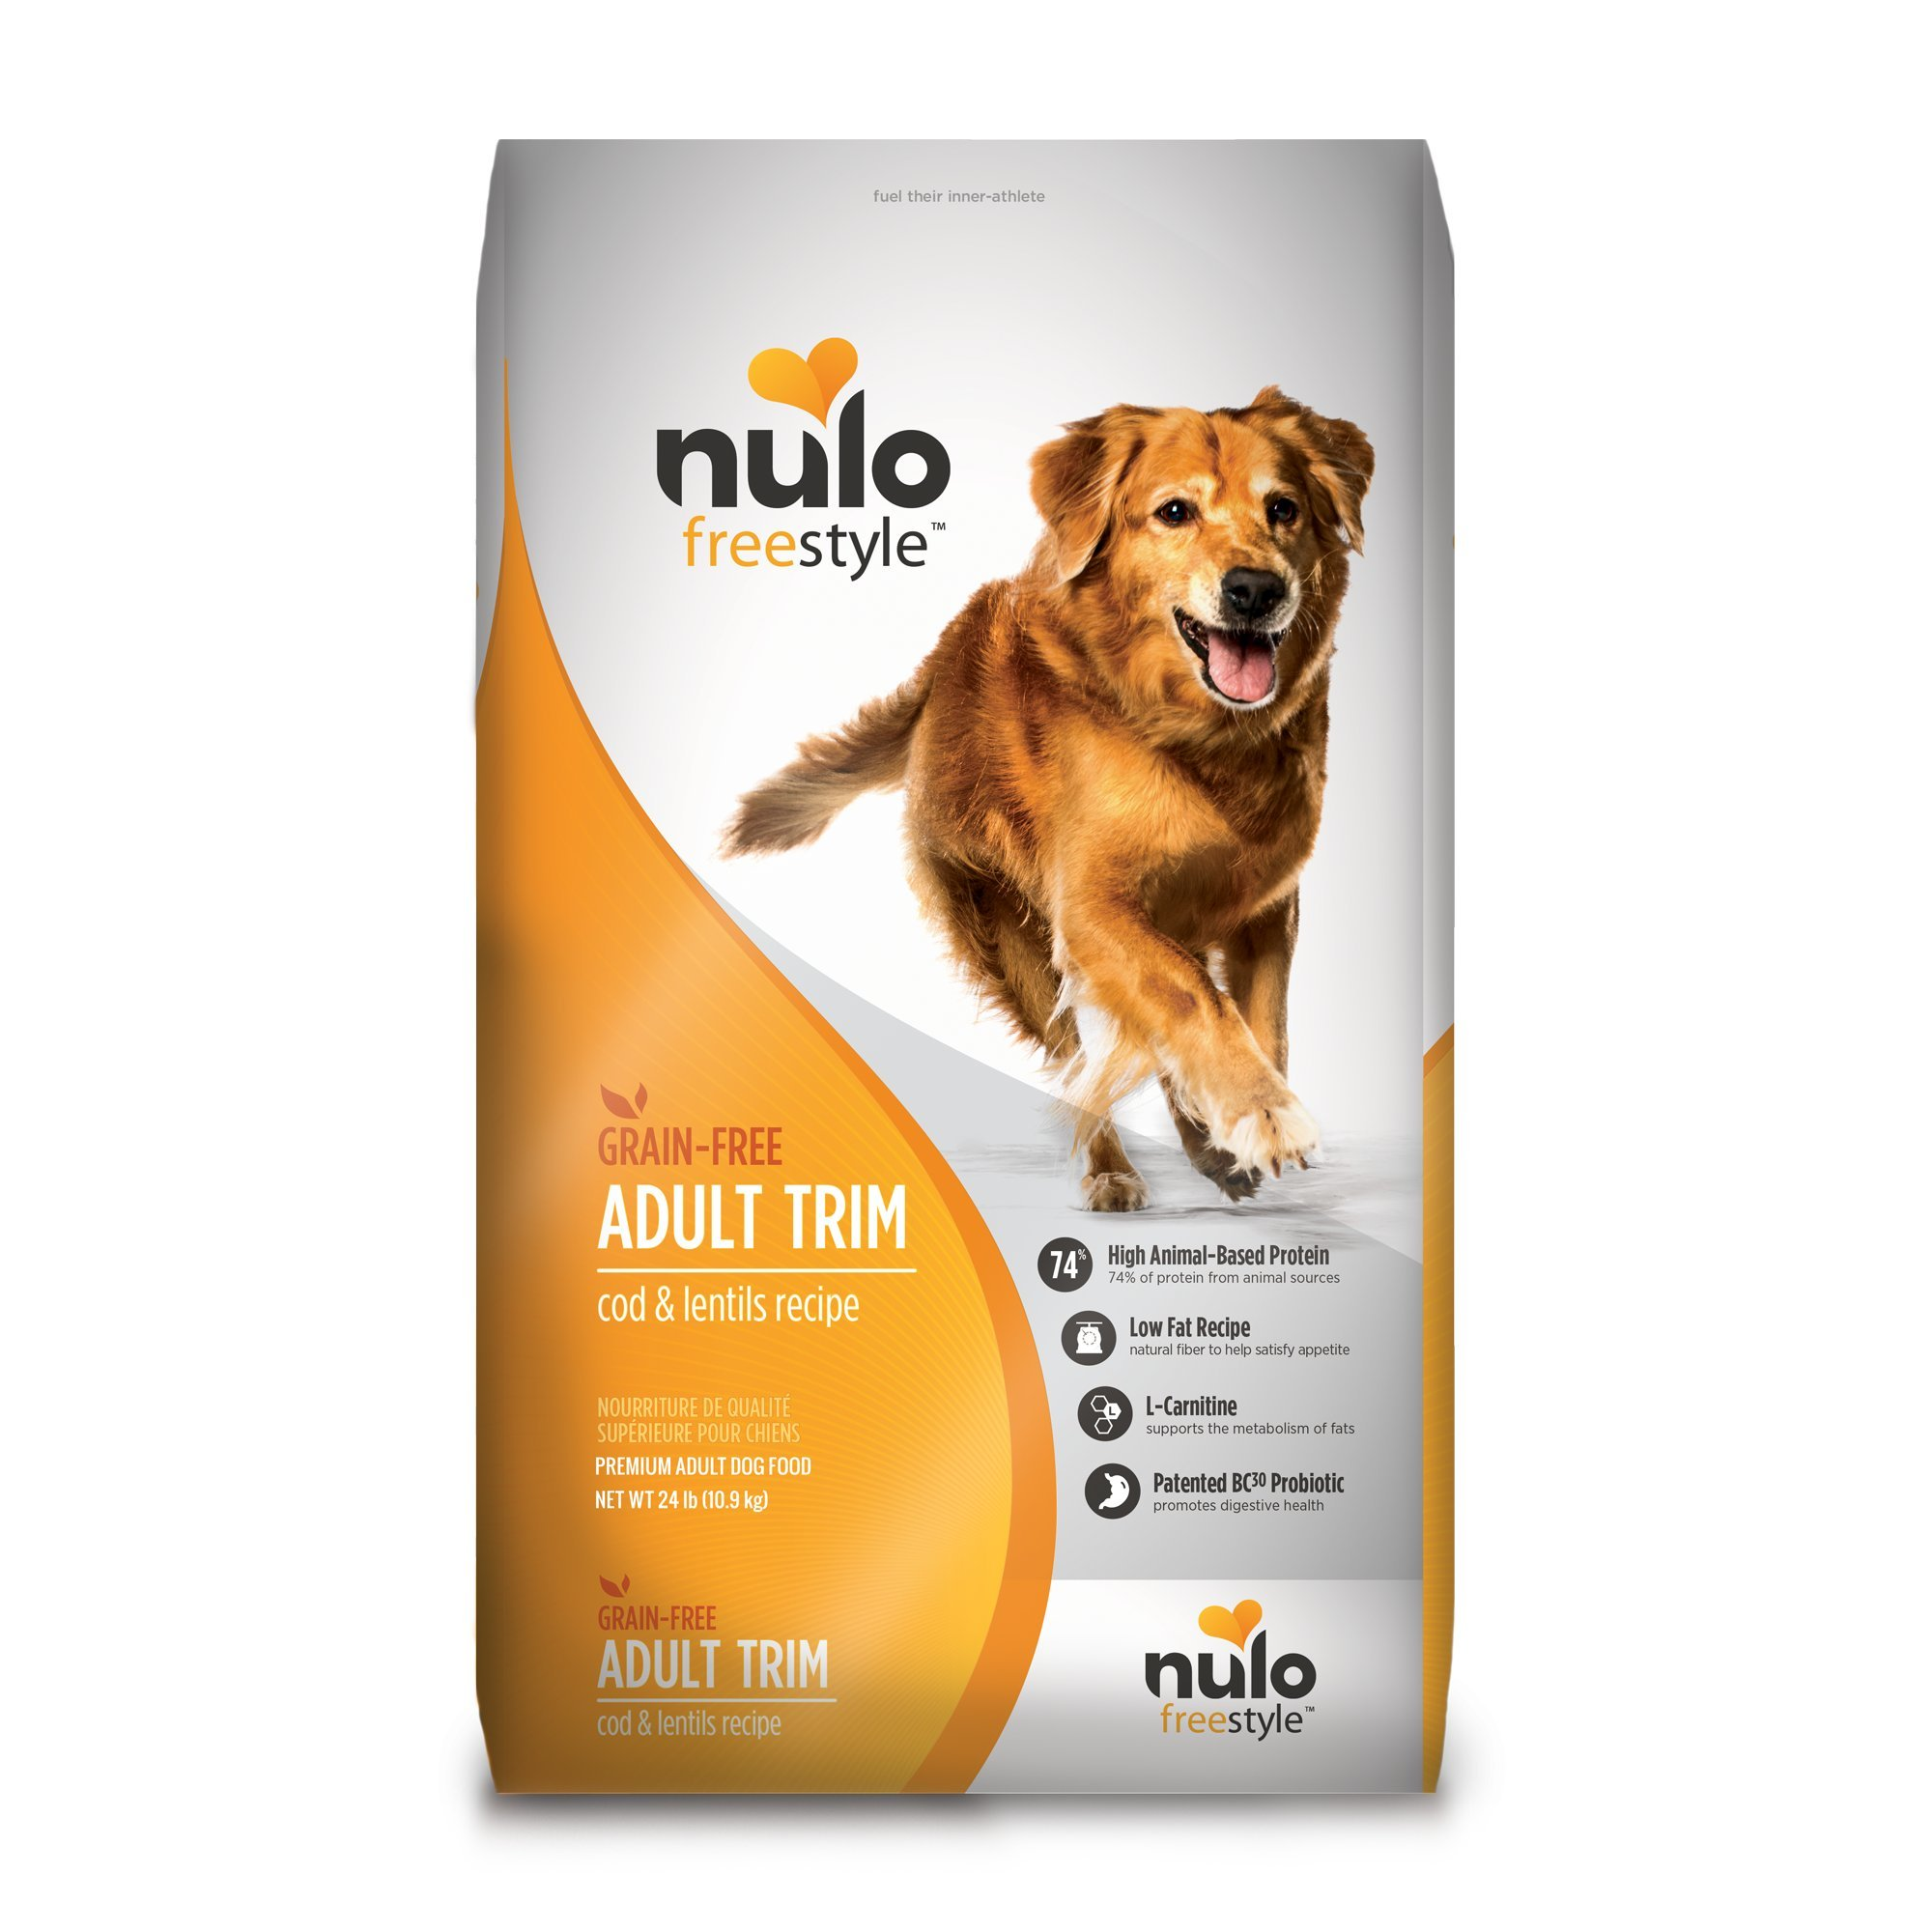 Nulo Adult Trim Grain Free Healthy Weight Dry Dog Food With Bc30 Probiotic (Cod And Lentils Recipe, 24Lb Bag) by Nulo